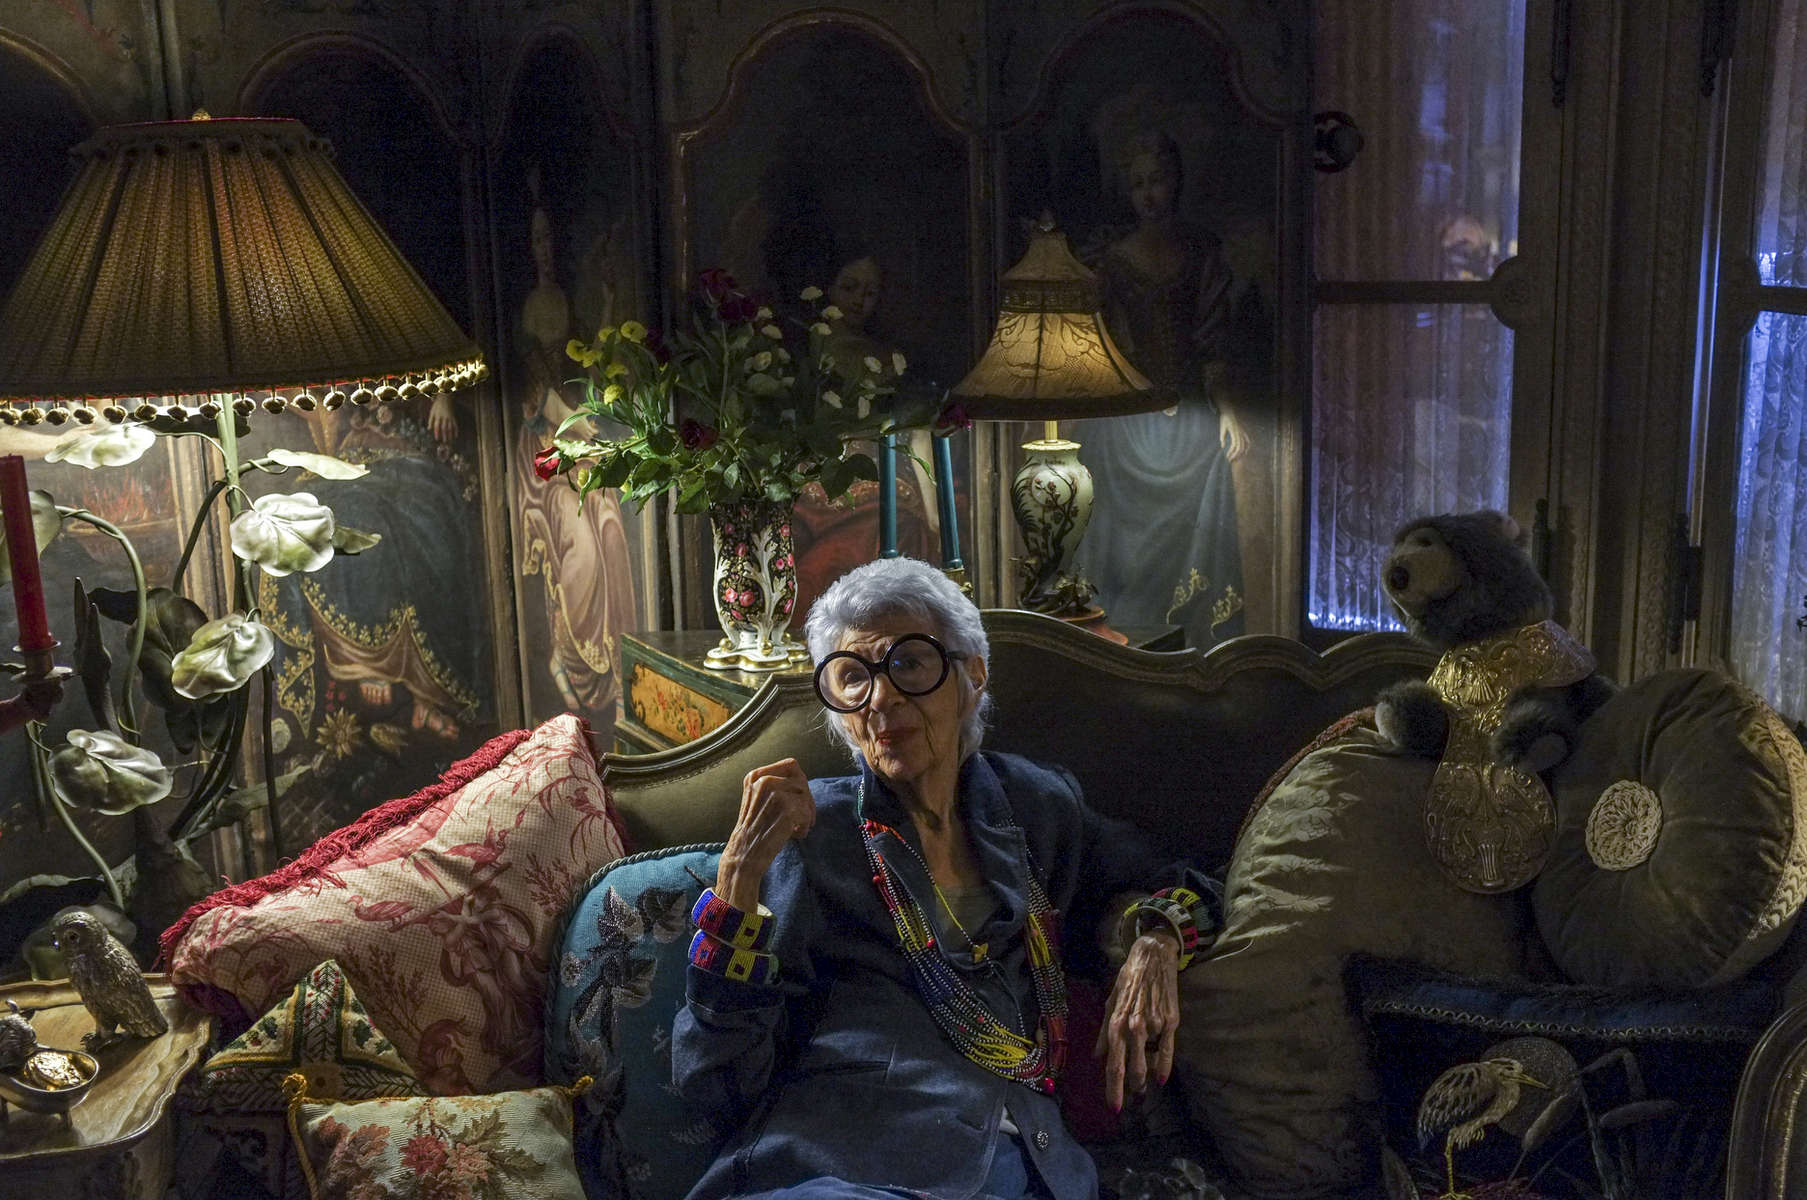 USA.  New York.  2012.  The fashion designer and icon Iris Apfel photographed at her Upper East Side Manhattan home.